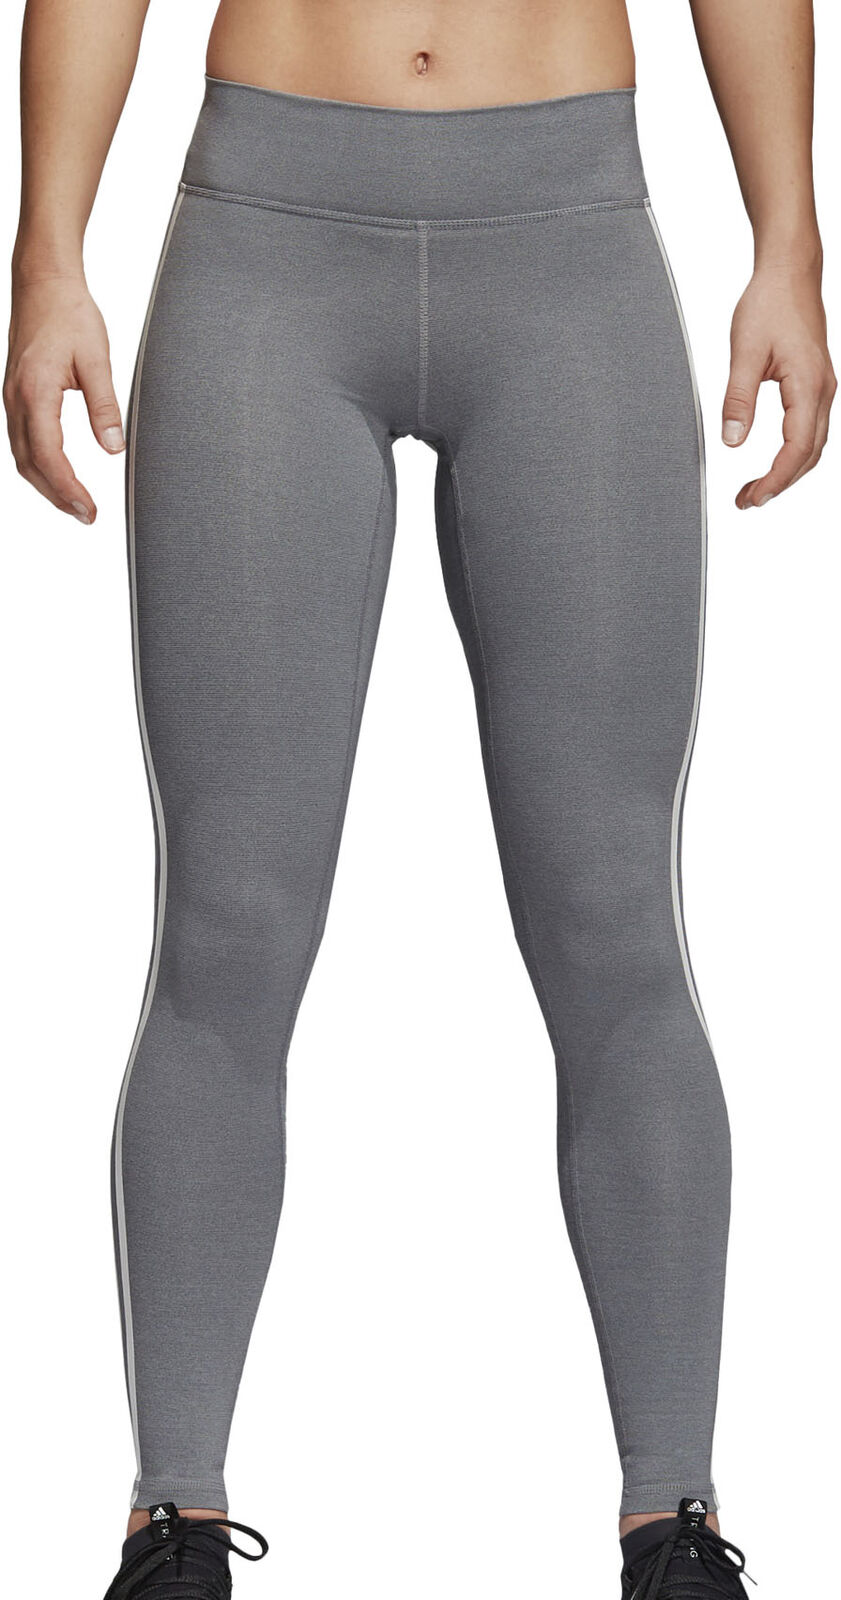 Believe this adidas 3 stripe Womens long workout tights - grey